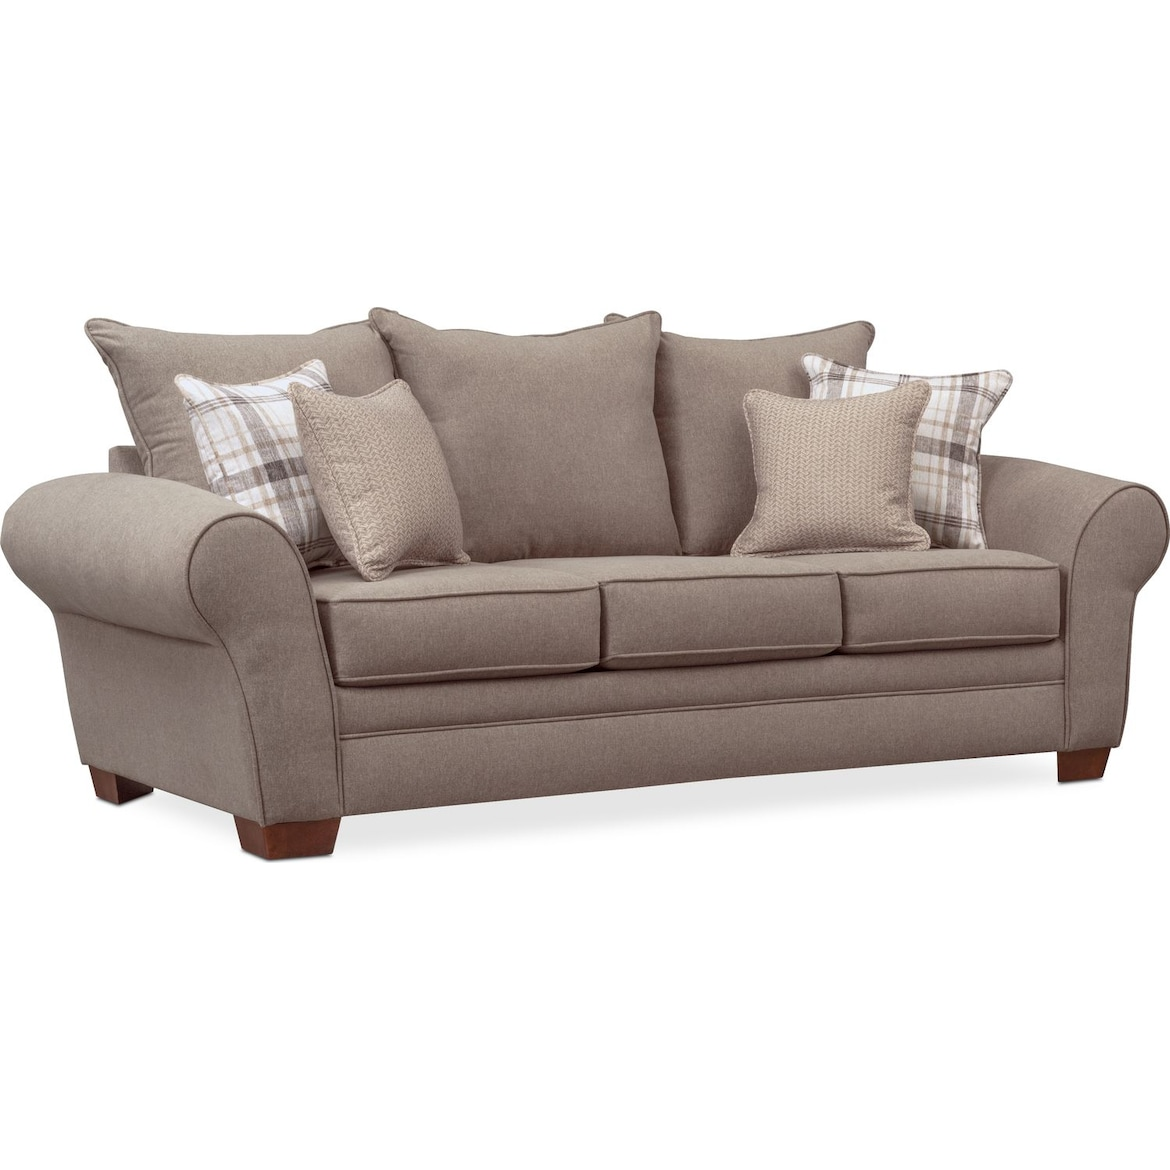 Rowan Sofa American Signature Furniture